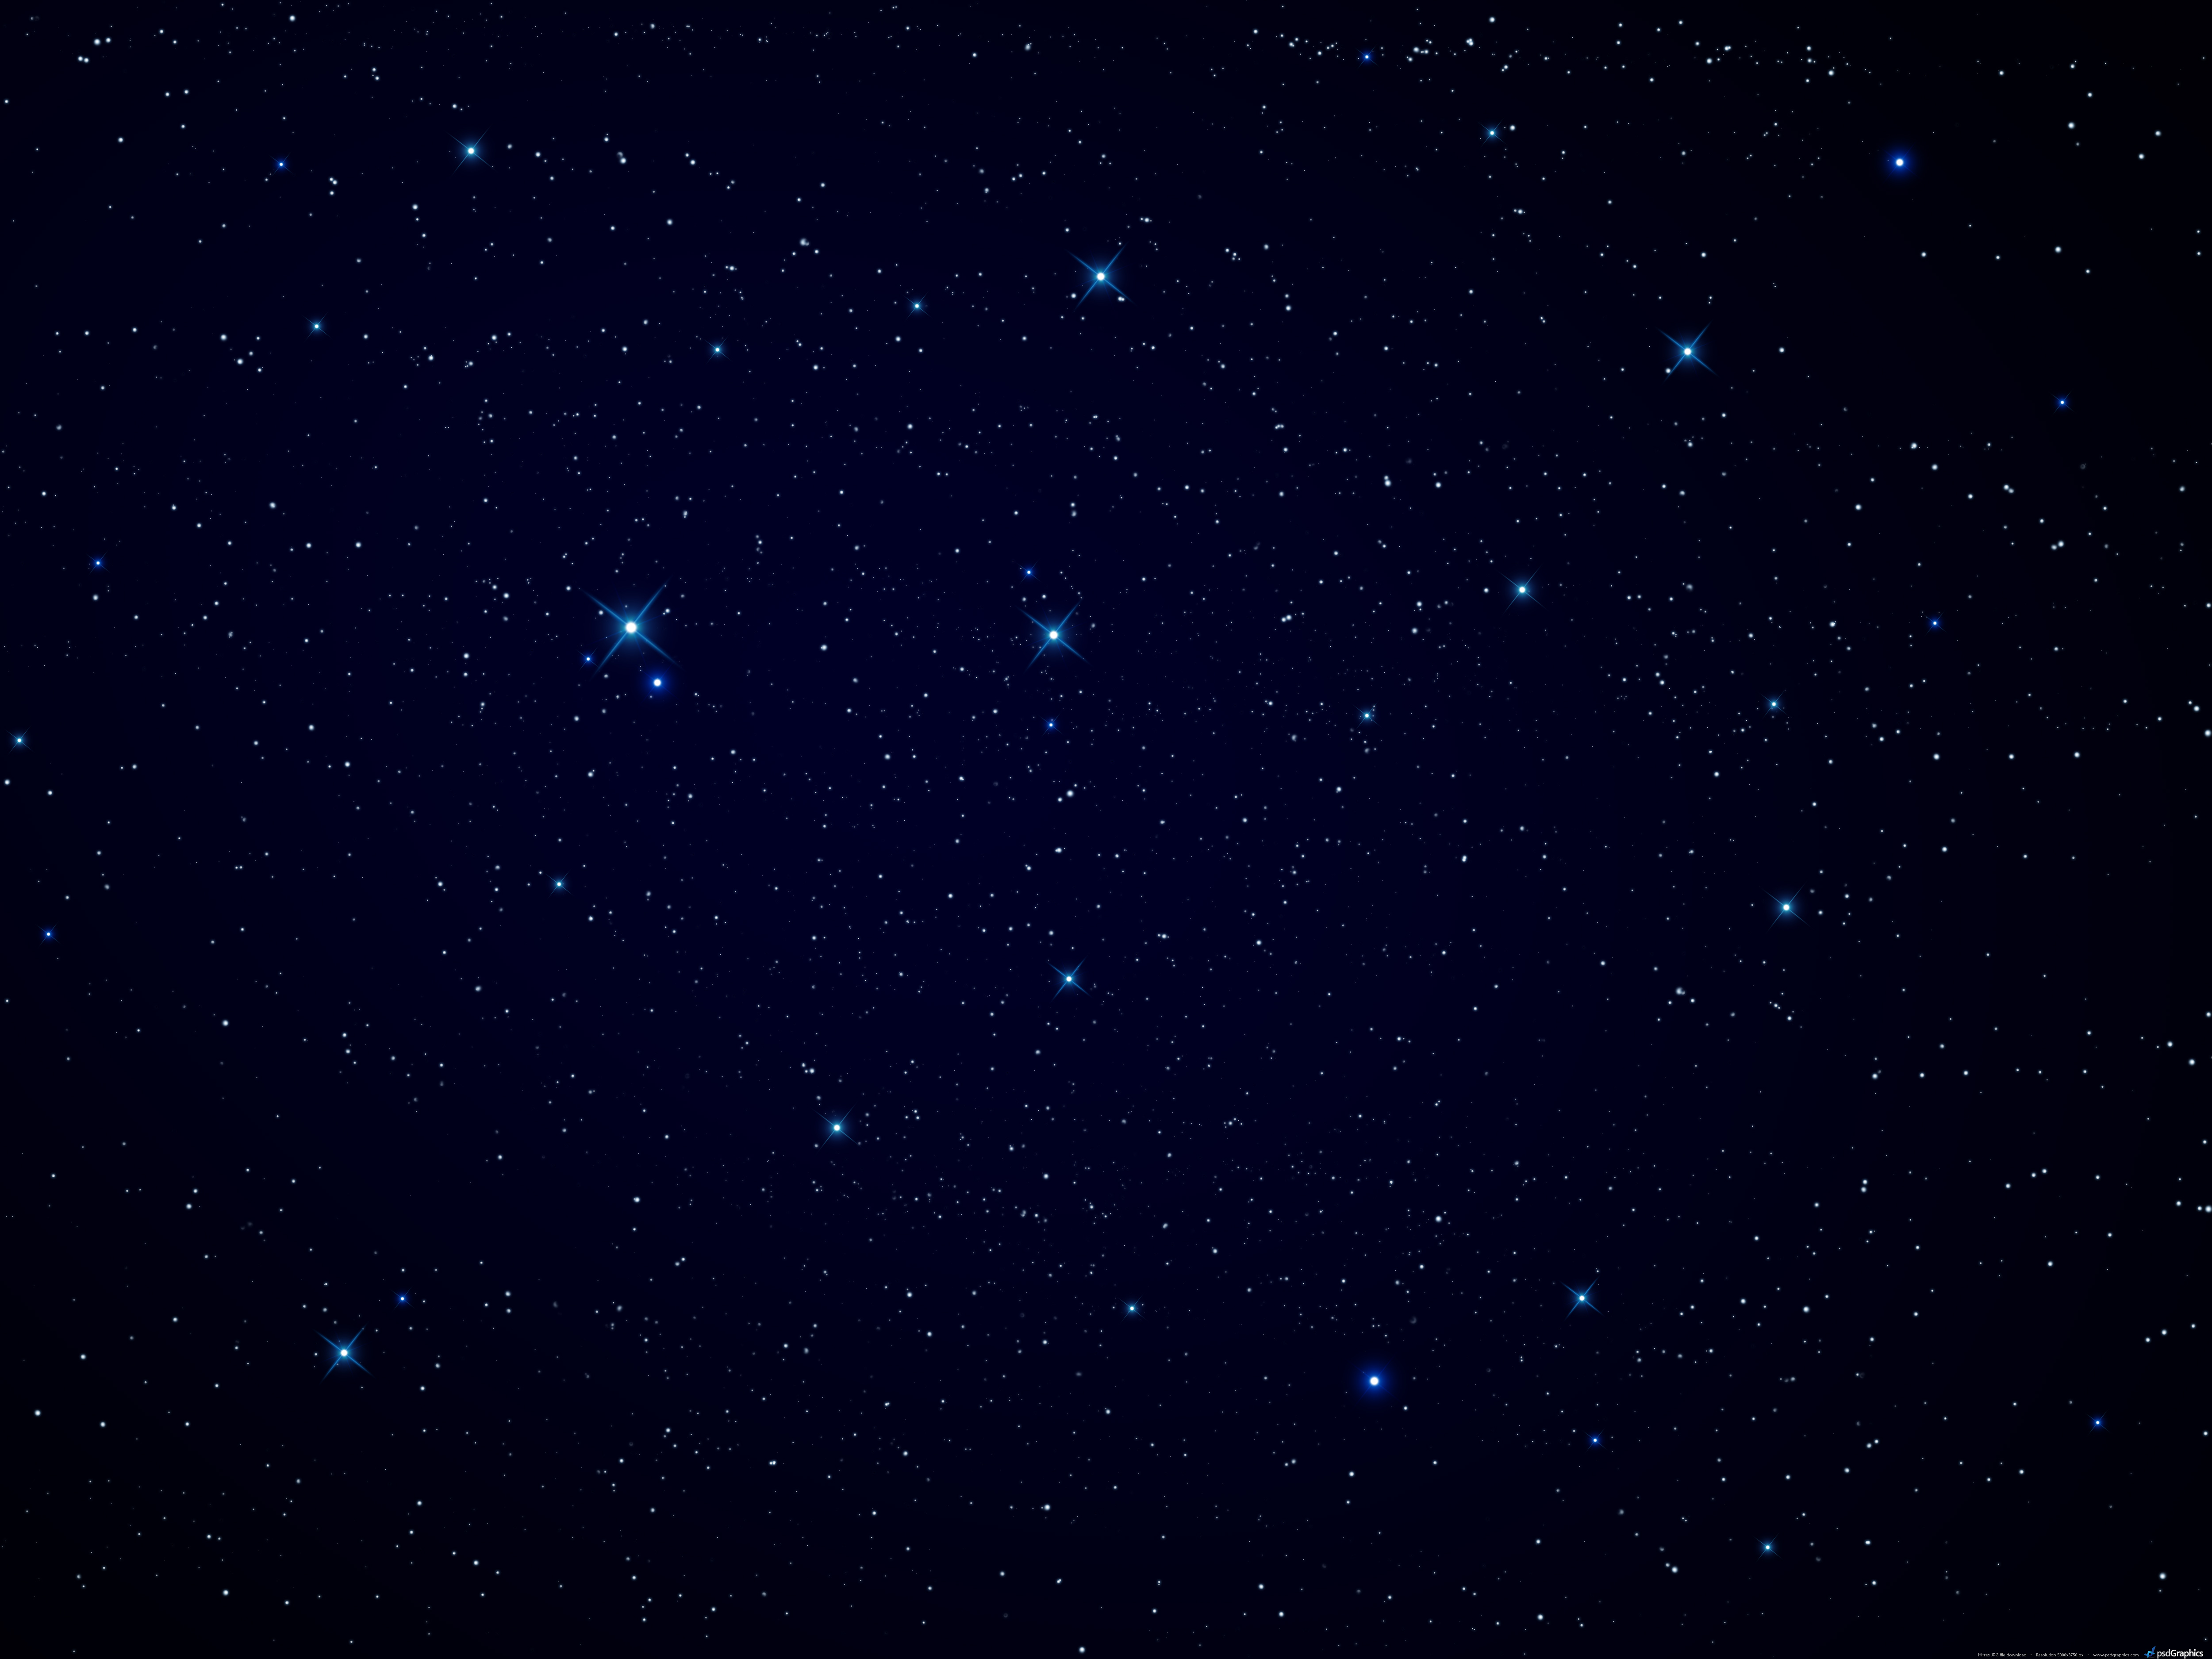 Wallpaper clipart night sky With high sky Wallpapers Sky